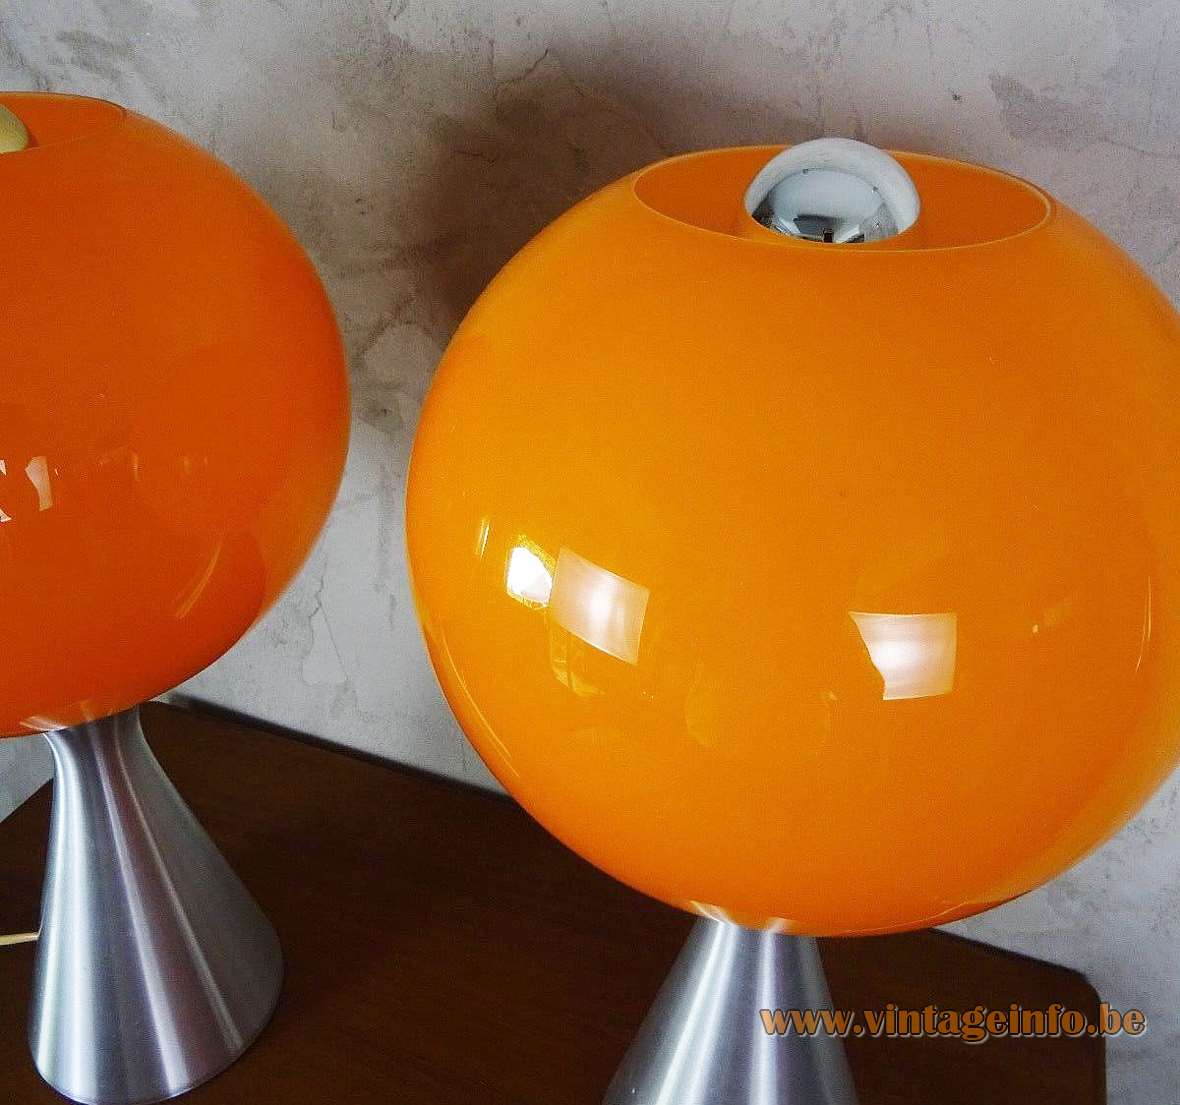 1970s ERCO Globe Table Lamp orange glass ball aluminium conical base MCM Germany